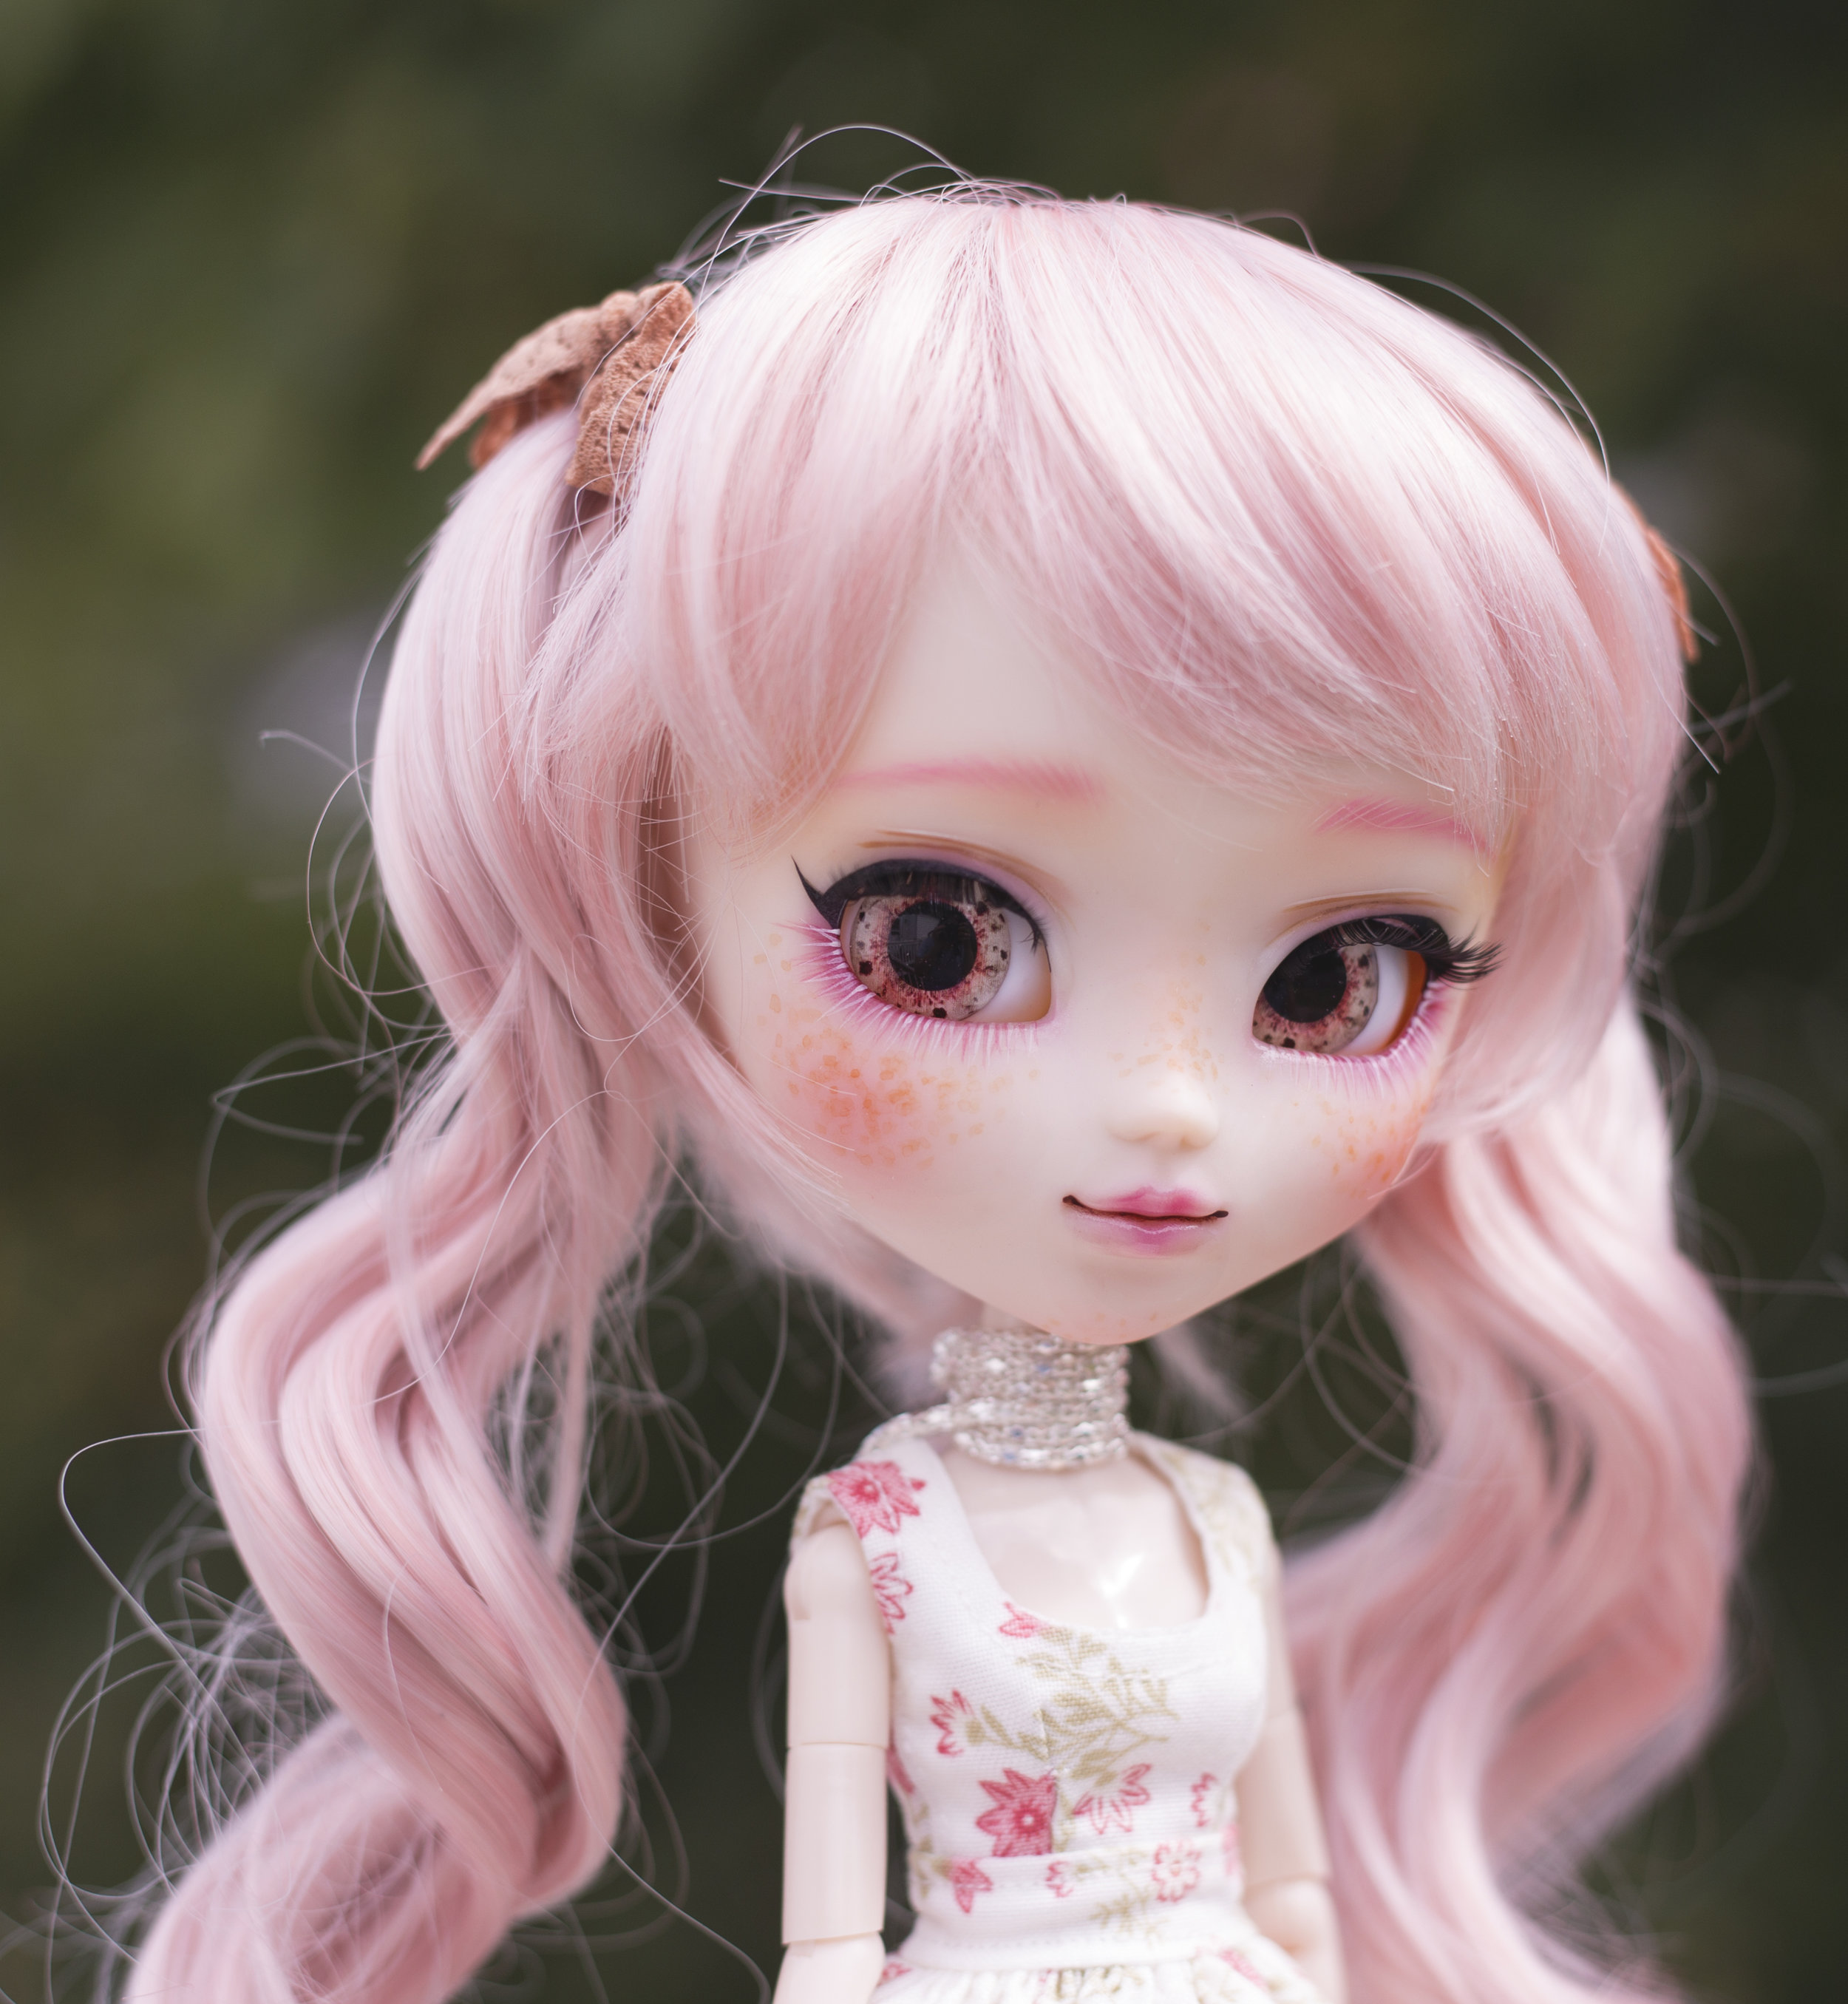 Sakura Jelly by Yummy Sweets Dolls